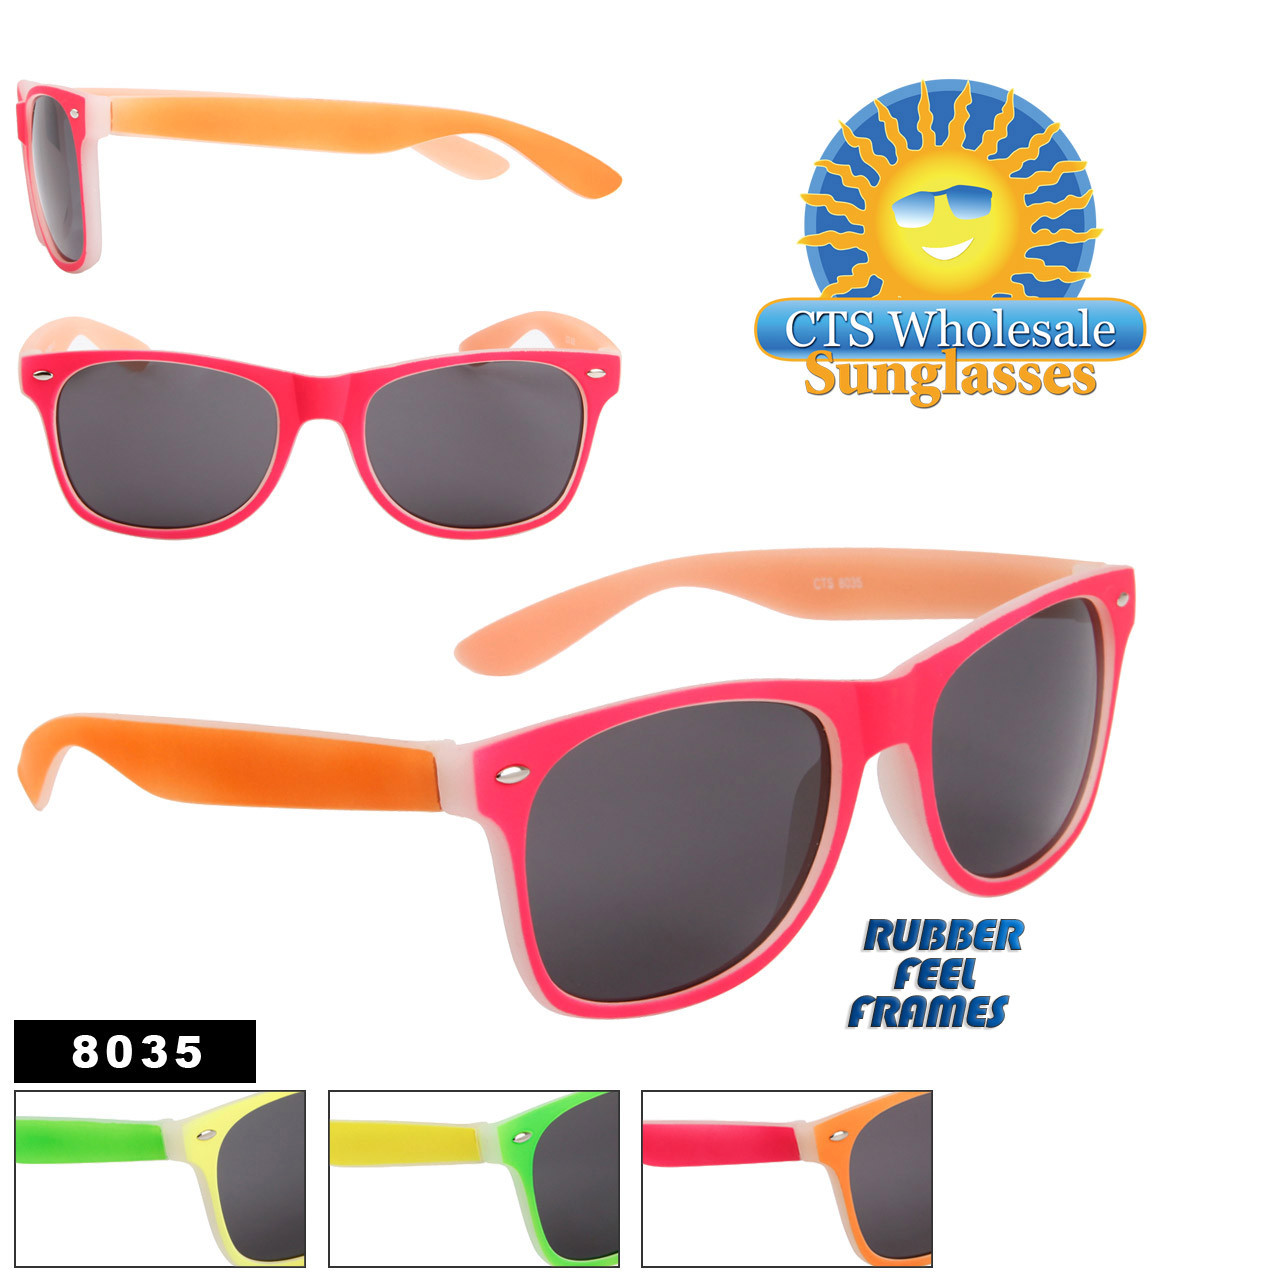 Neon Color California Classics Sunglasses - 8035 Rubber Feel Frame - (Assorted Colors) (12 pcs.)